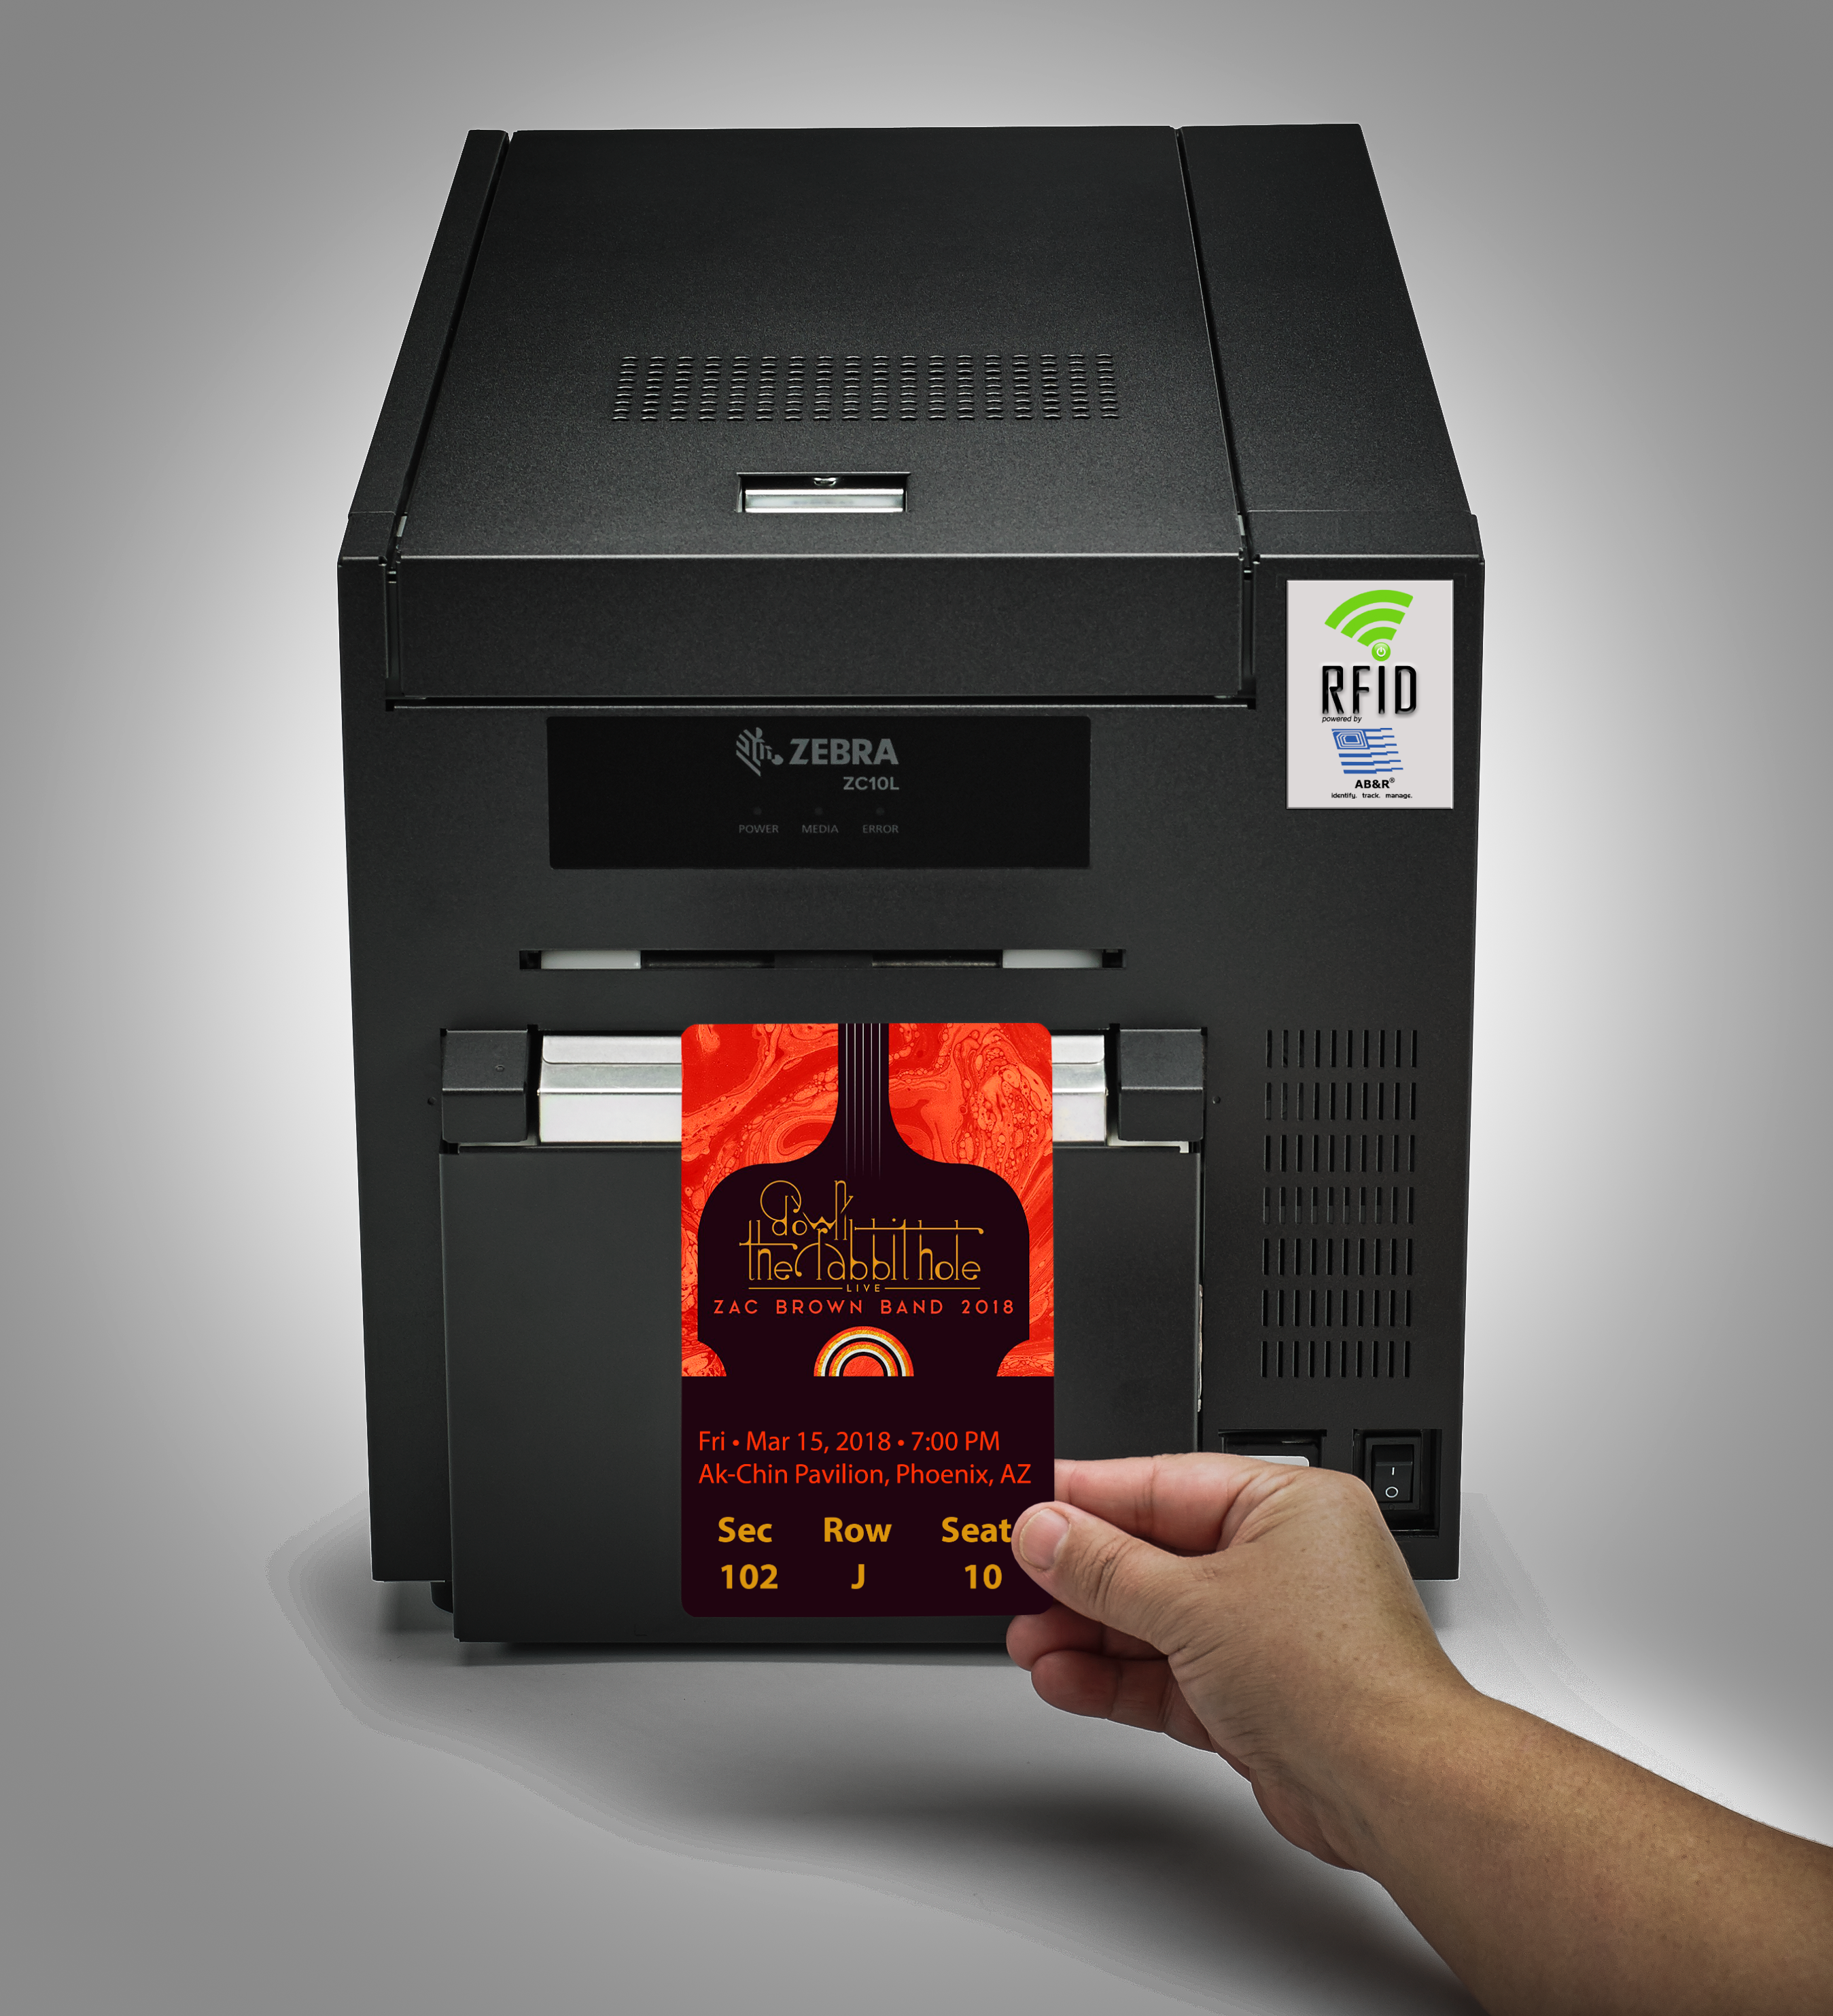 AB&R®'S ZC10L RFID LARGE FORMAT CARD PRINTER NAMED A FINALIST FOR BEST NEW PRODUCT BY RFID JOURNAL!